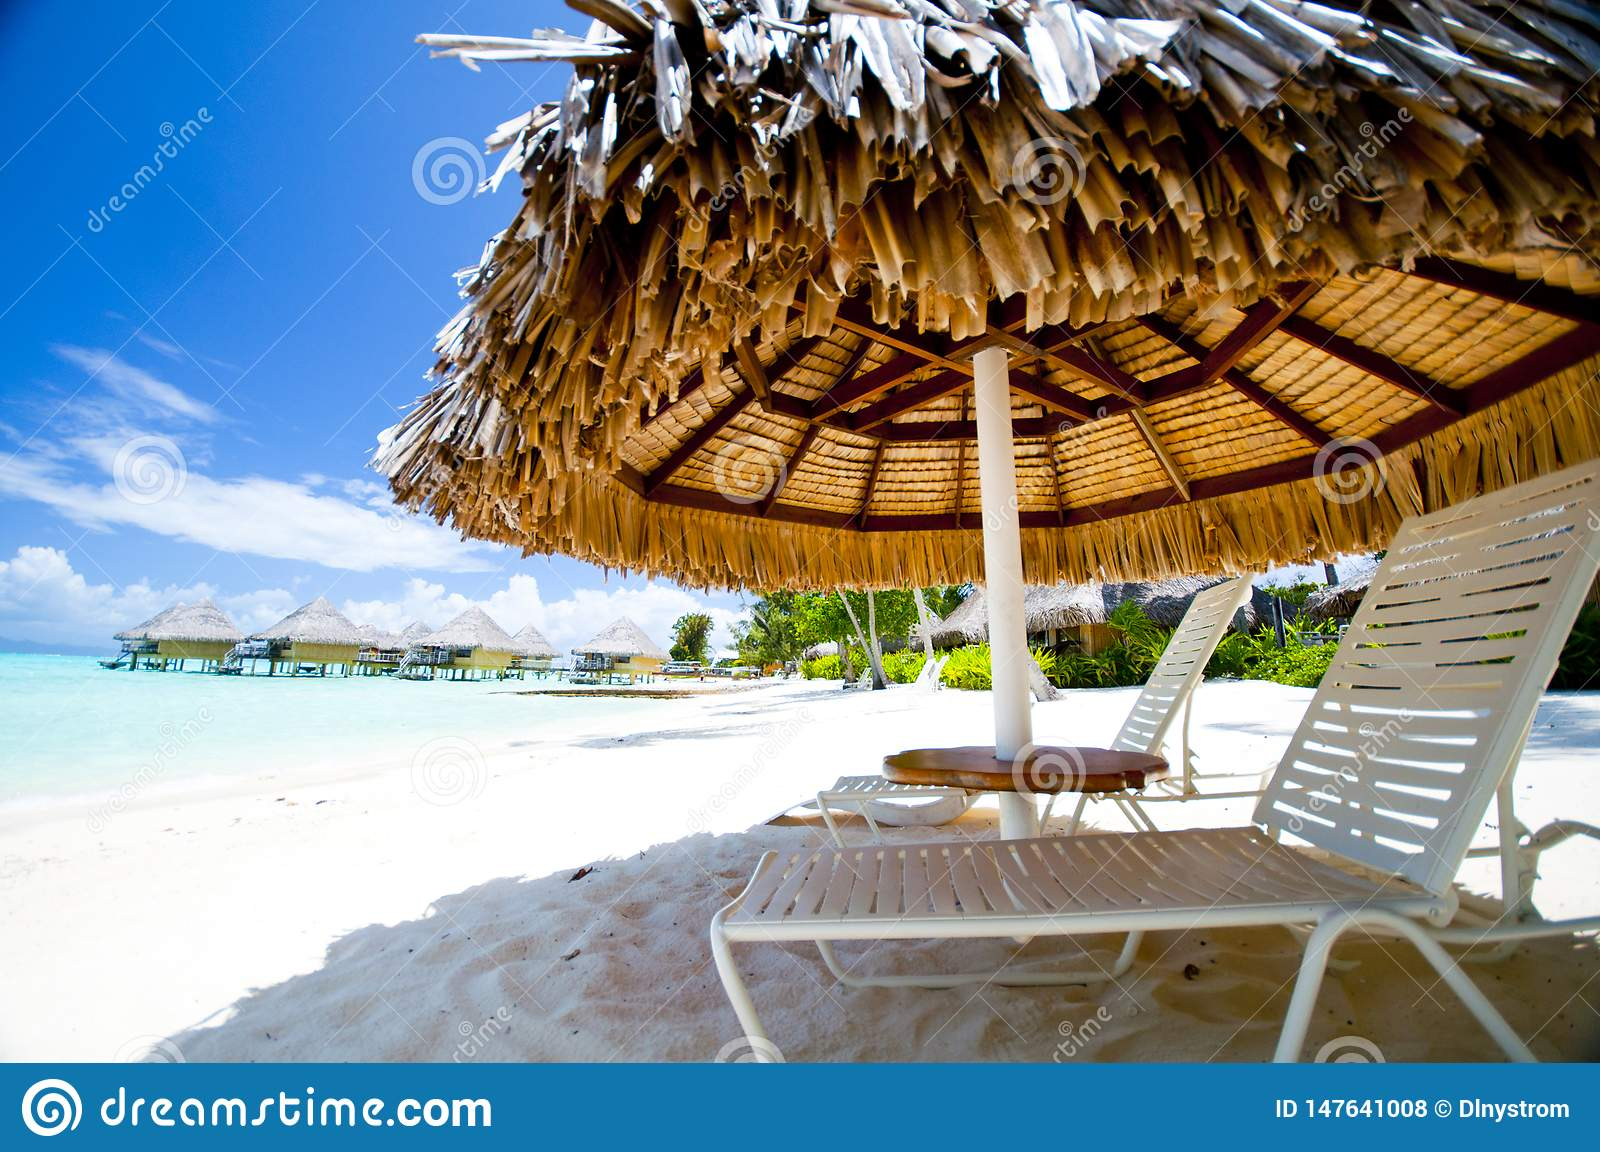 Marvelous Lounge Chairs Under Umbrella On The Beach Stock Photo Ocoug Best Dining Table And Chair Ideas Images Ocougorg